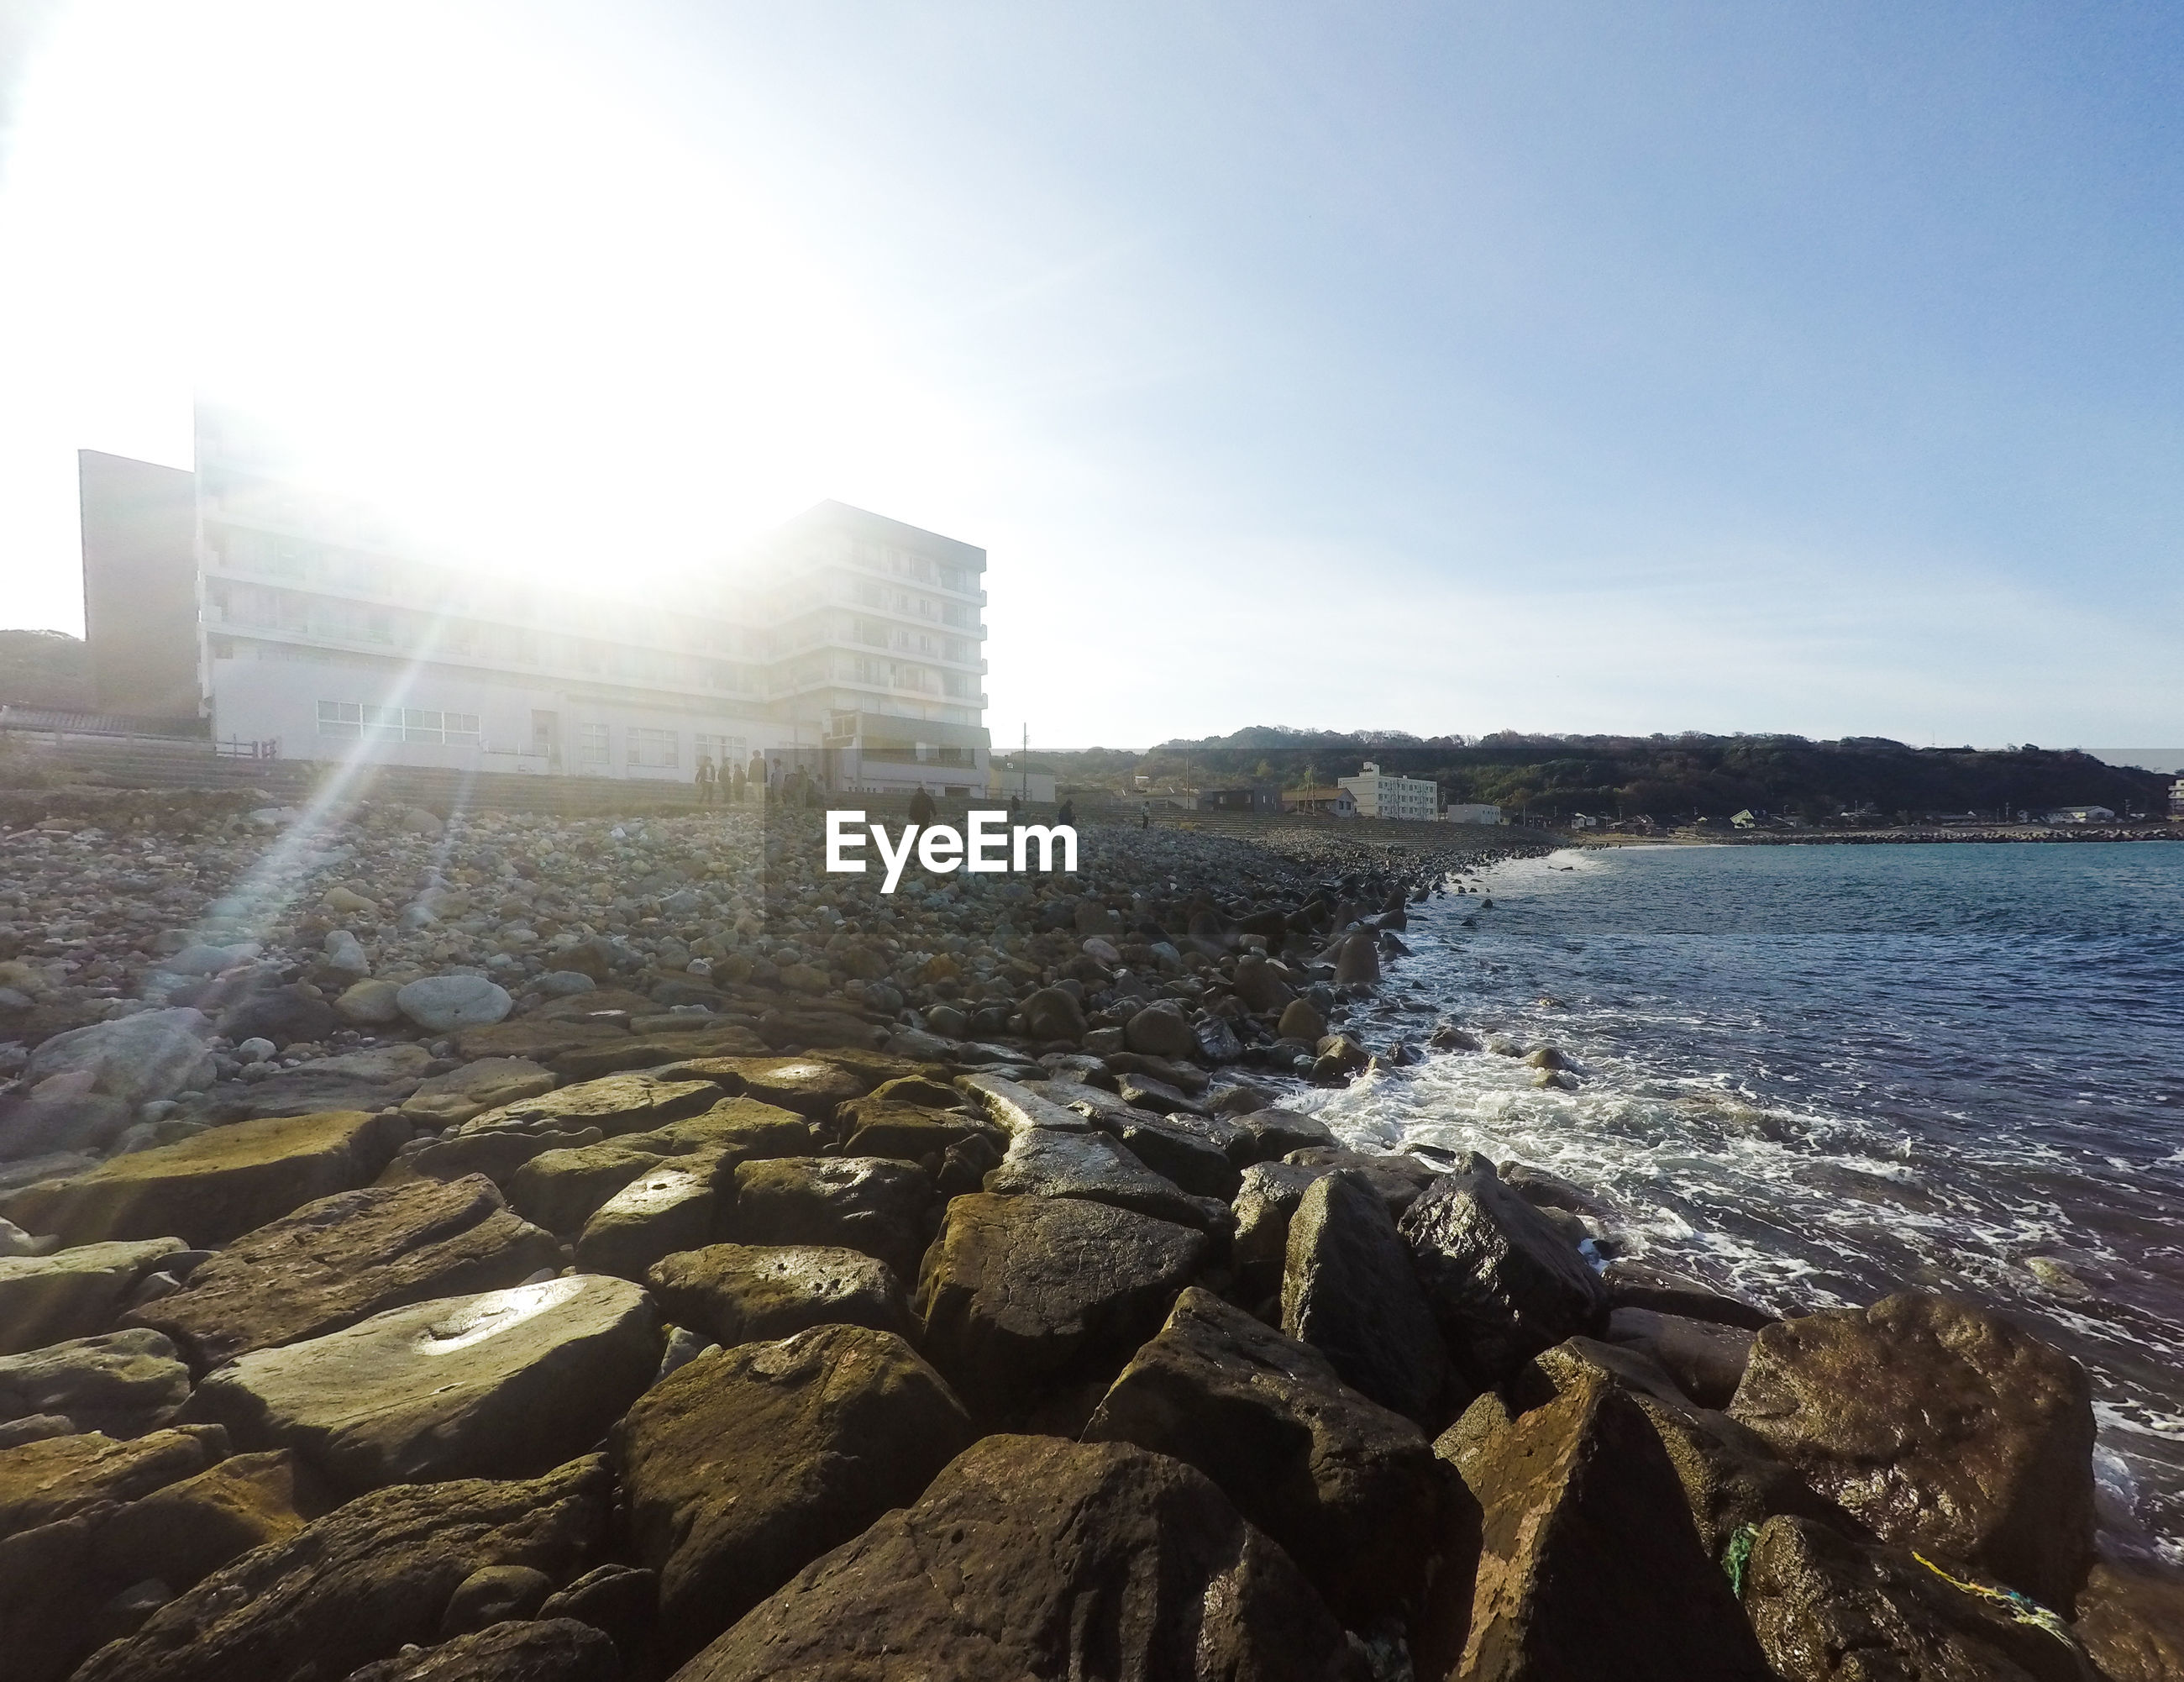 Rocky shore by buildings against sky on sunny day